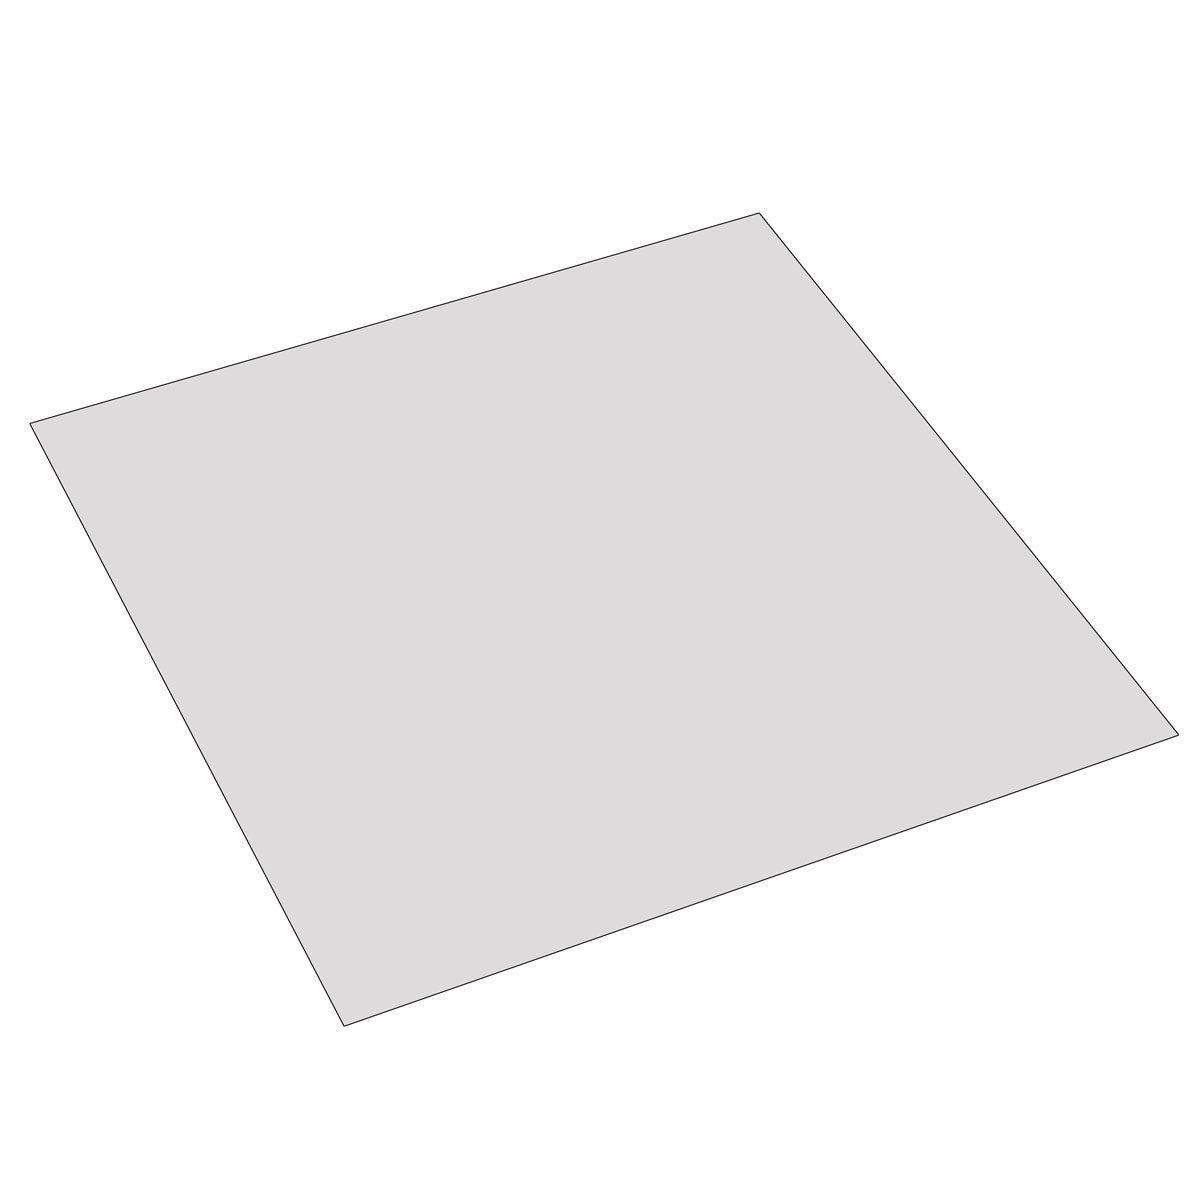 300*300*0.8mm/300*300*1mm/200*200*1.0mm Polyetherimide PEI Sheet For 3D Printer